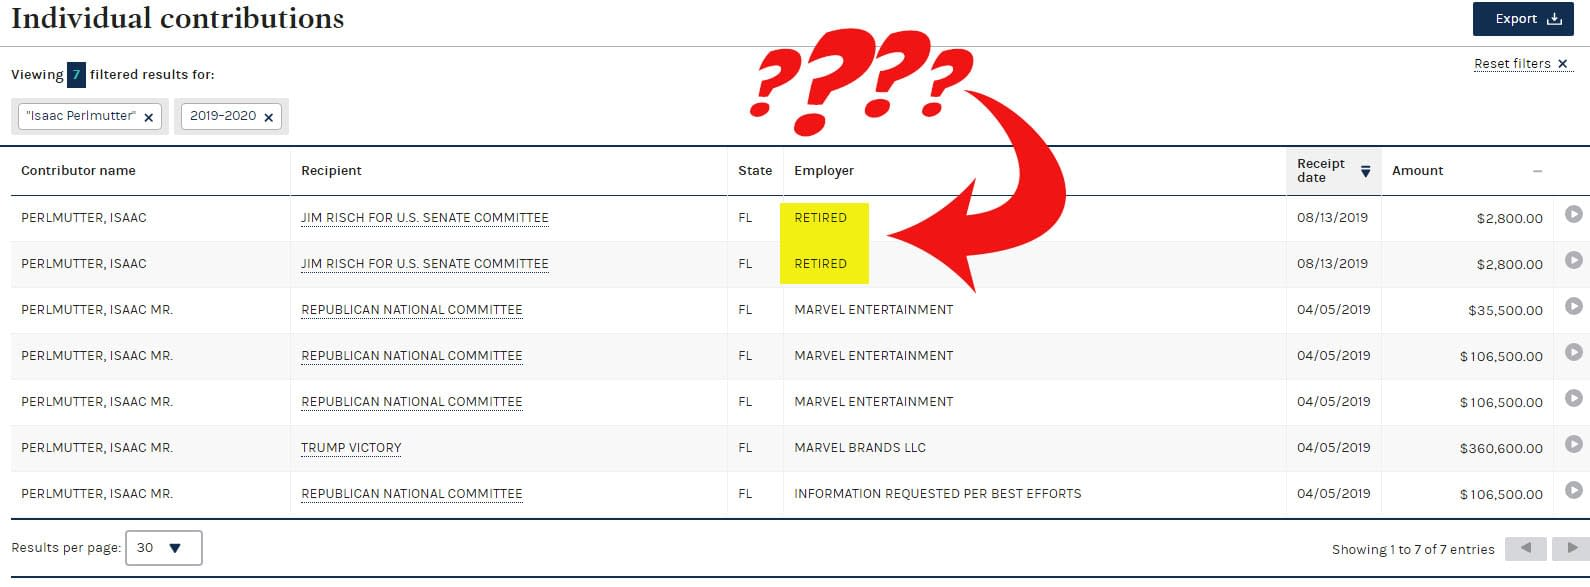 Ike Perlmutter's Latest Republican Donations List the Marvel Chairman as... Retired?!